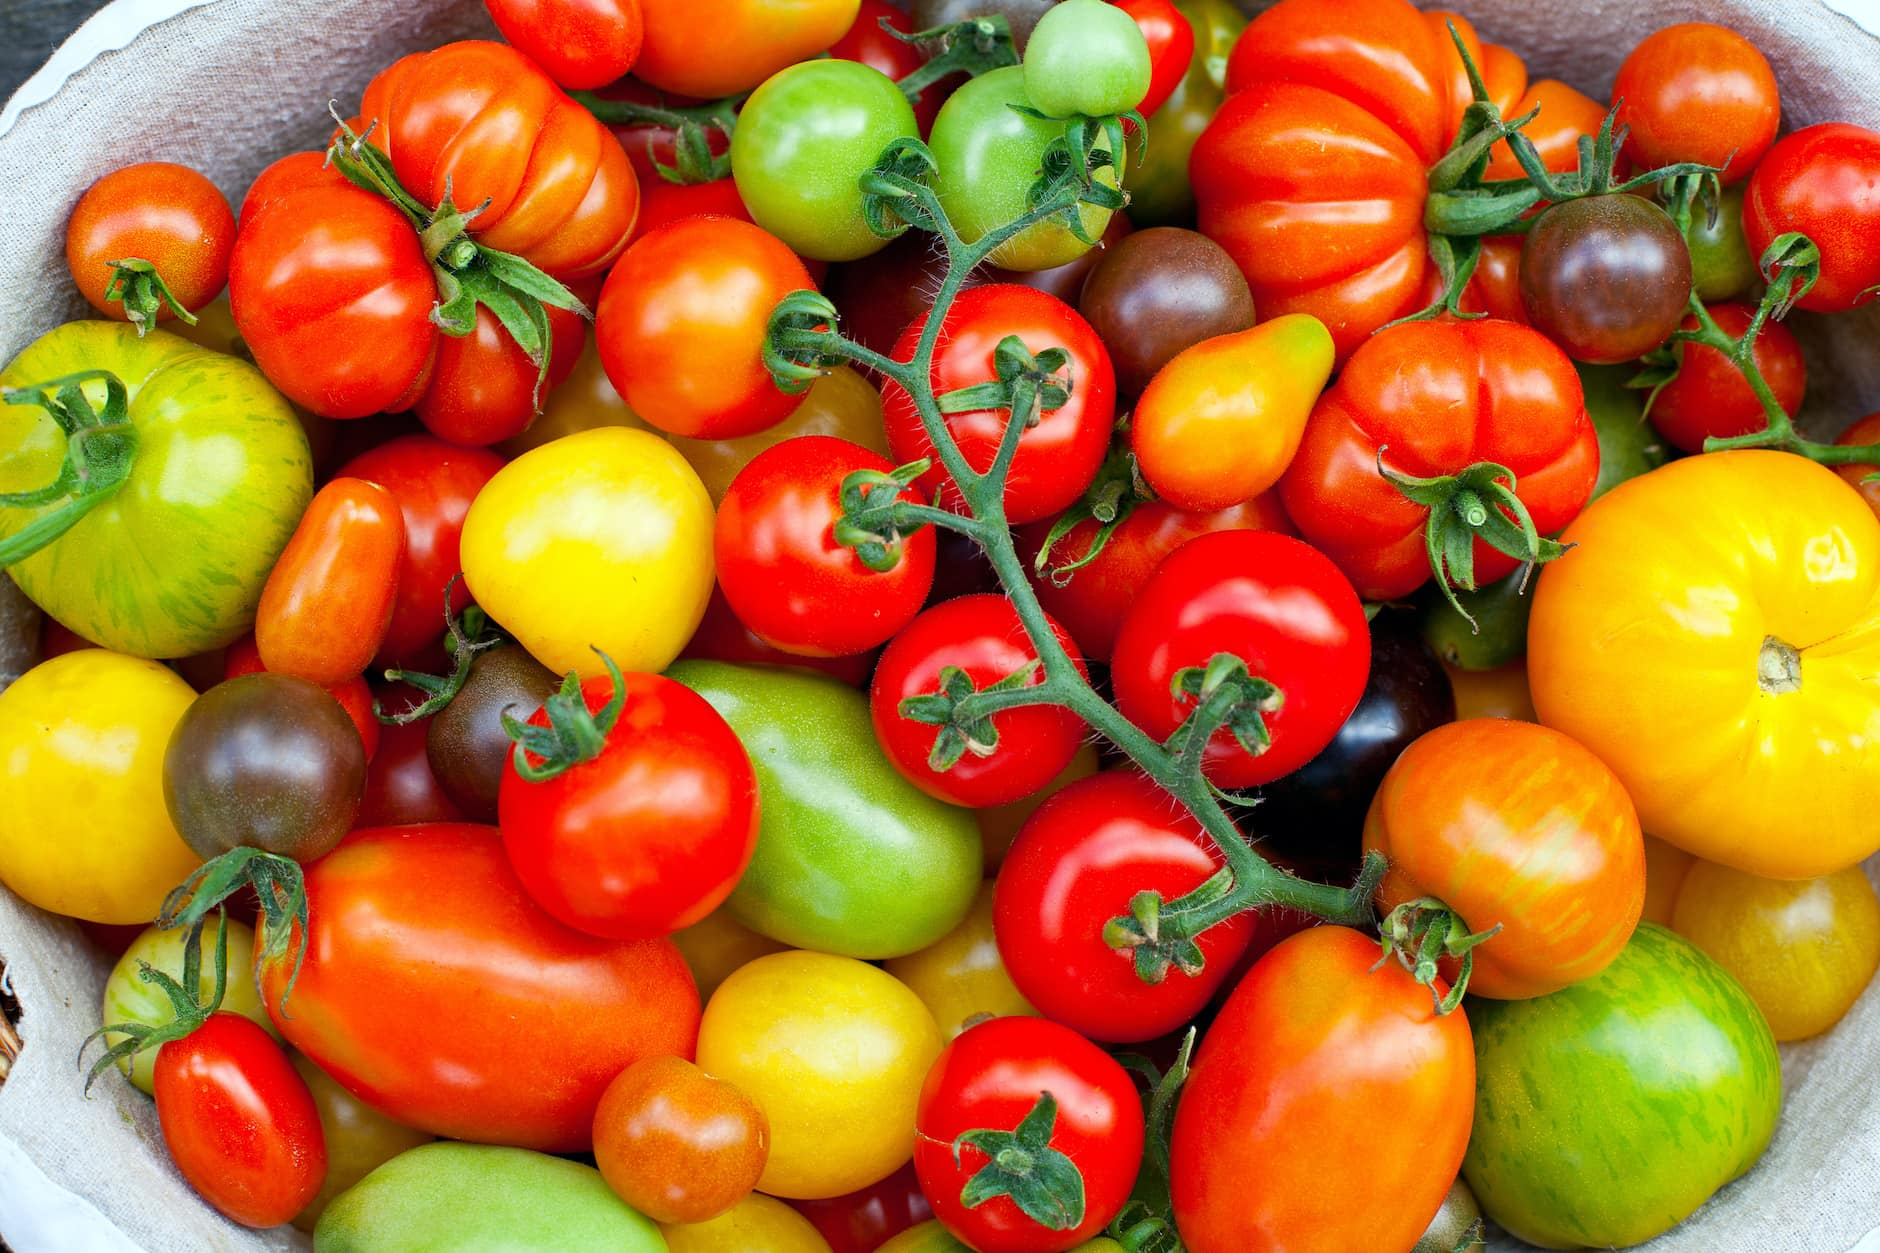 10 Things To Do With All Your Garden Tomatoesimage preview